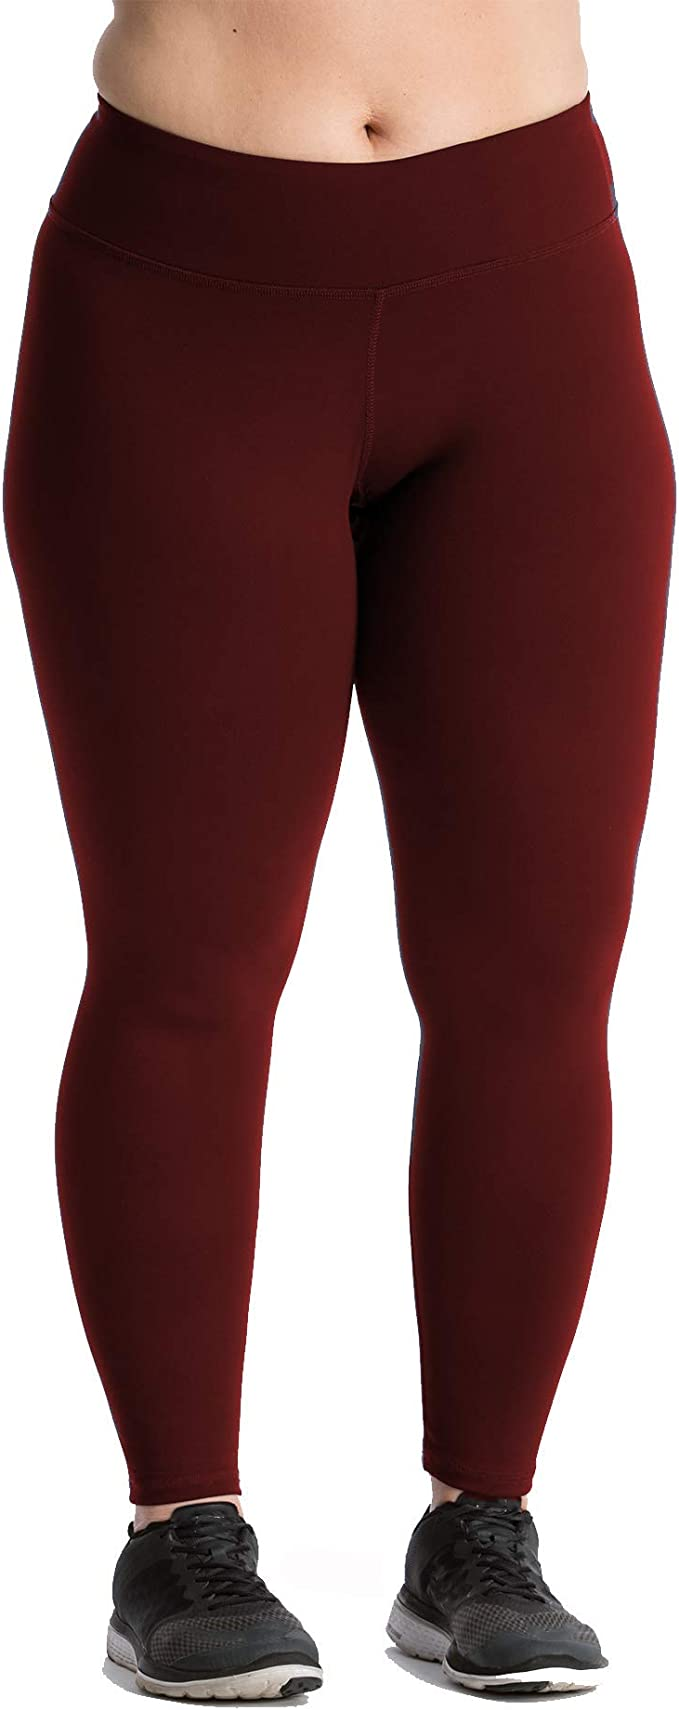 Amazon.com: Lola getts Premium Plus tamaño Leggings – Mujer ...